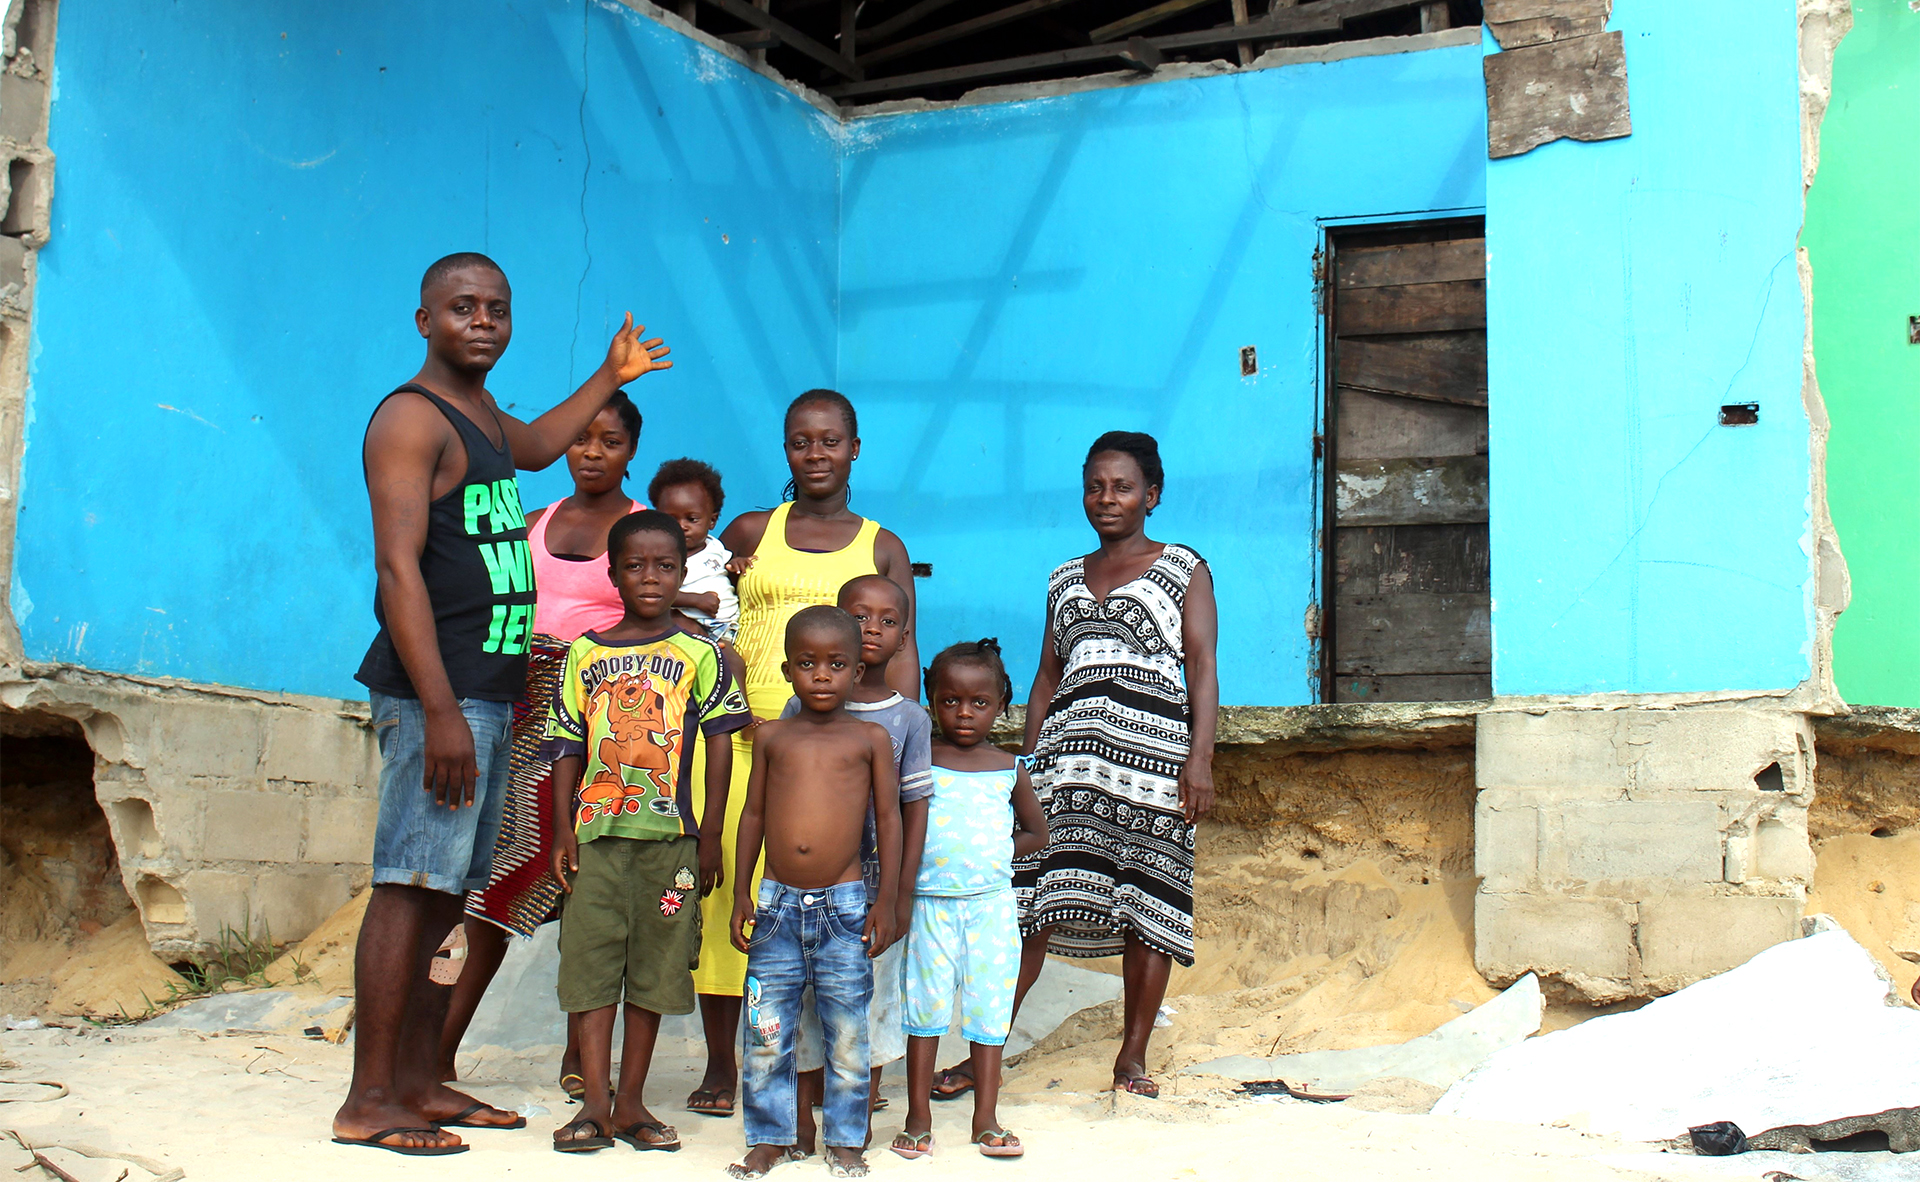 A family in front of a broken building